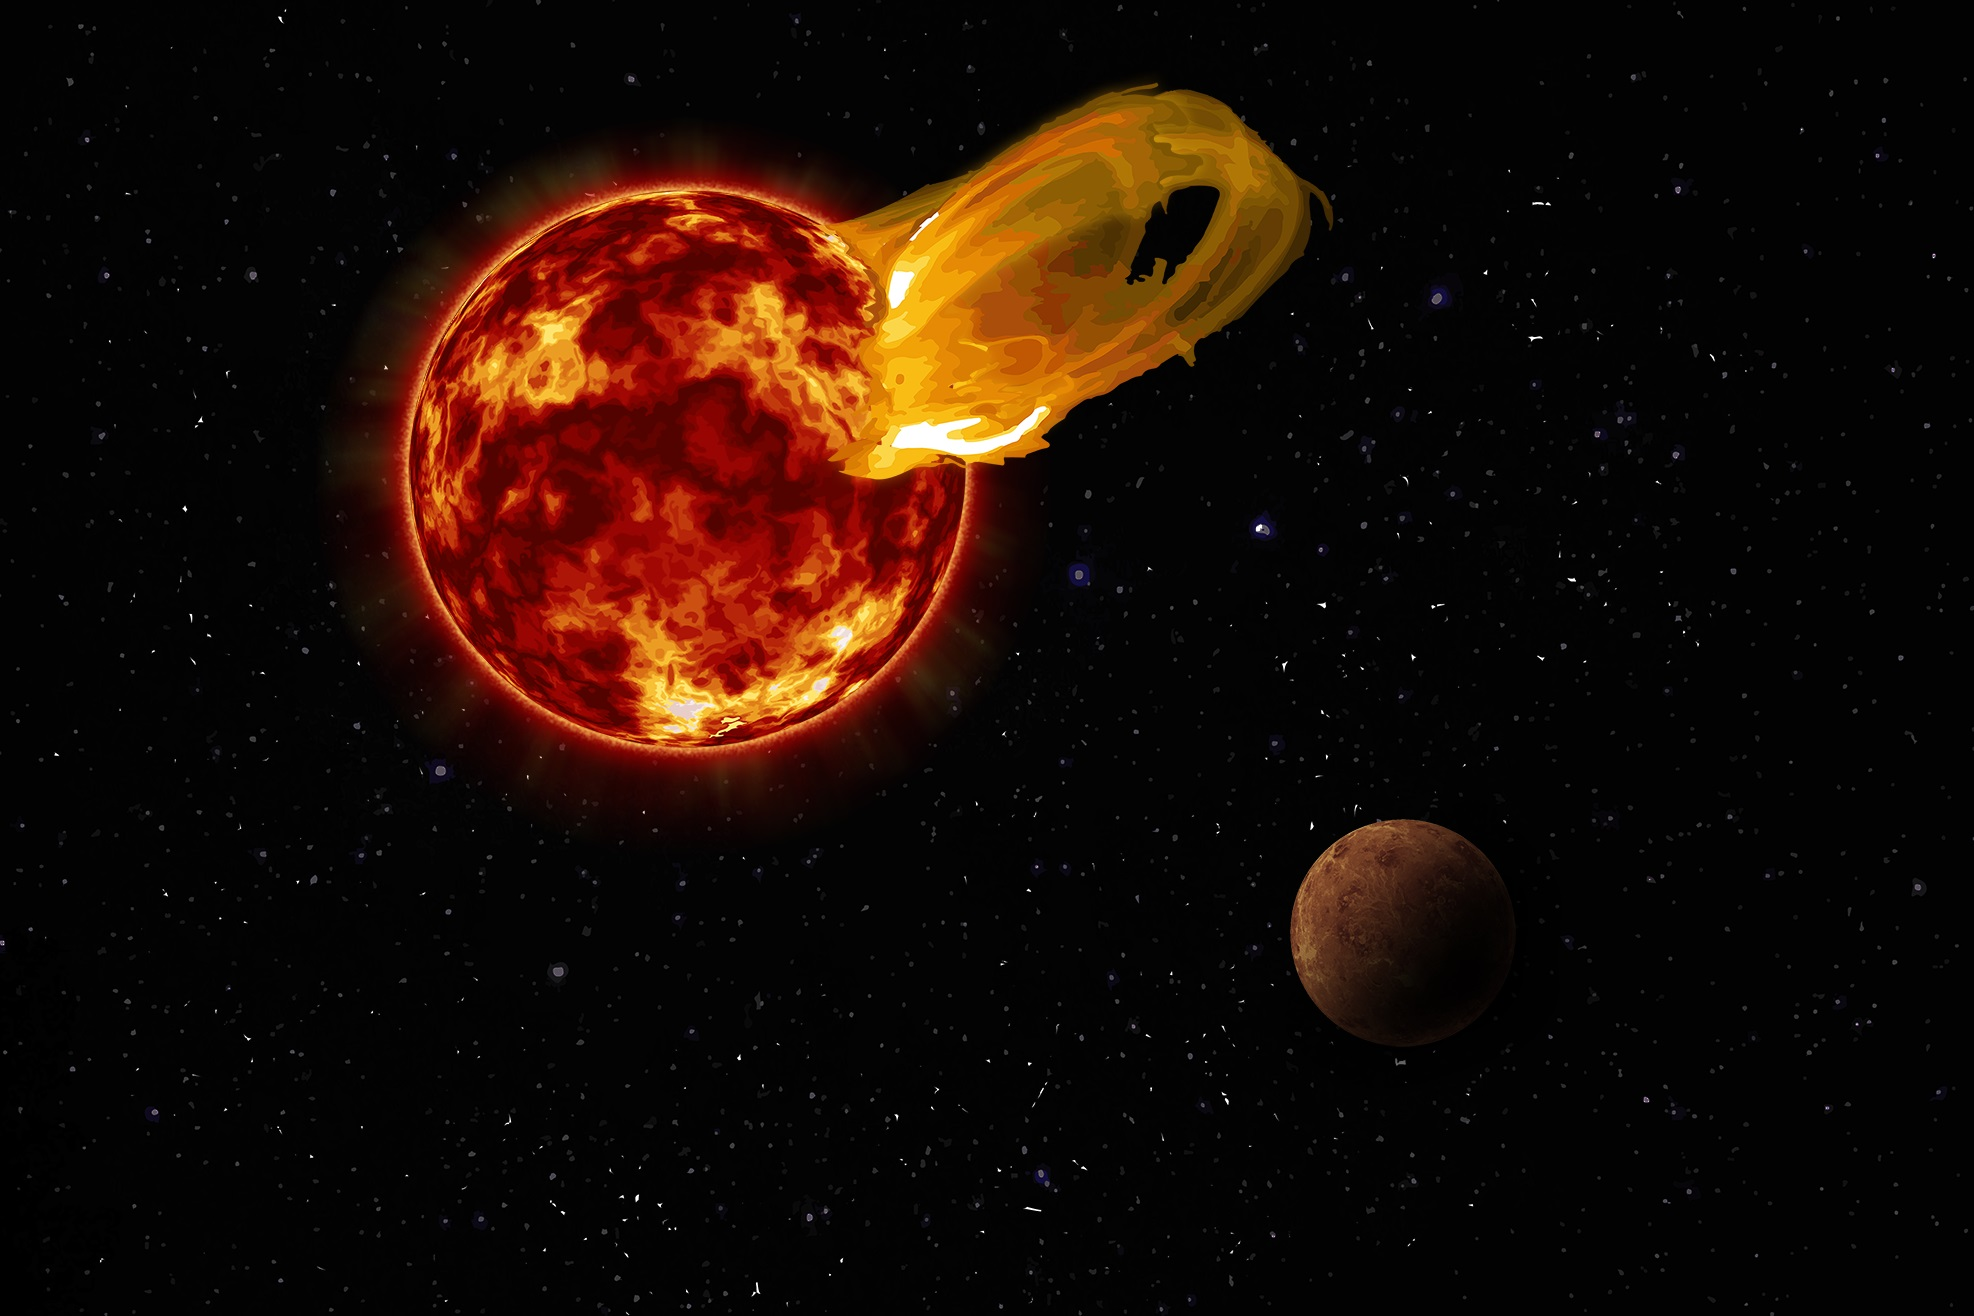 An artist's impression of a flare from Proxima Centauri, modeled after the loops of glowing hot gas seen in the largest solar flares, with the exoplanet Proxima b in the foreground. Image Credit: Roberto Molar Candanosa / Carnegie Institution for Science, NASA/SDO, NASA/JPL